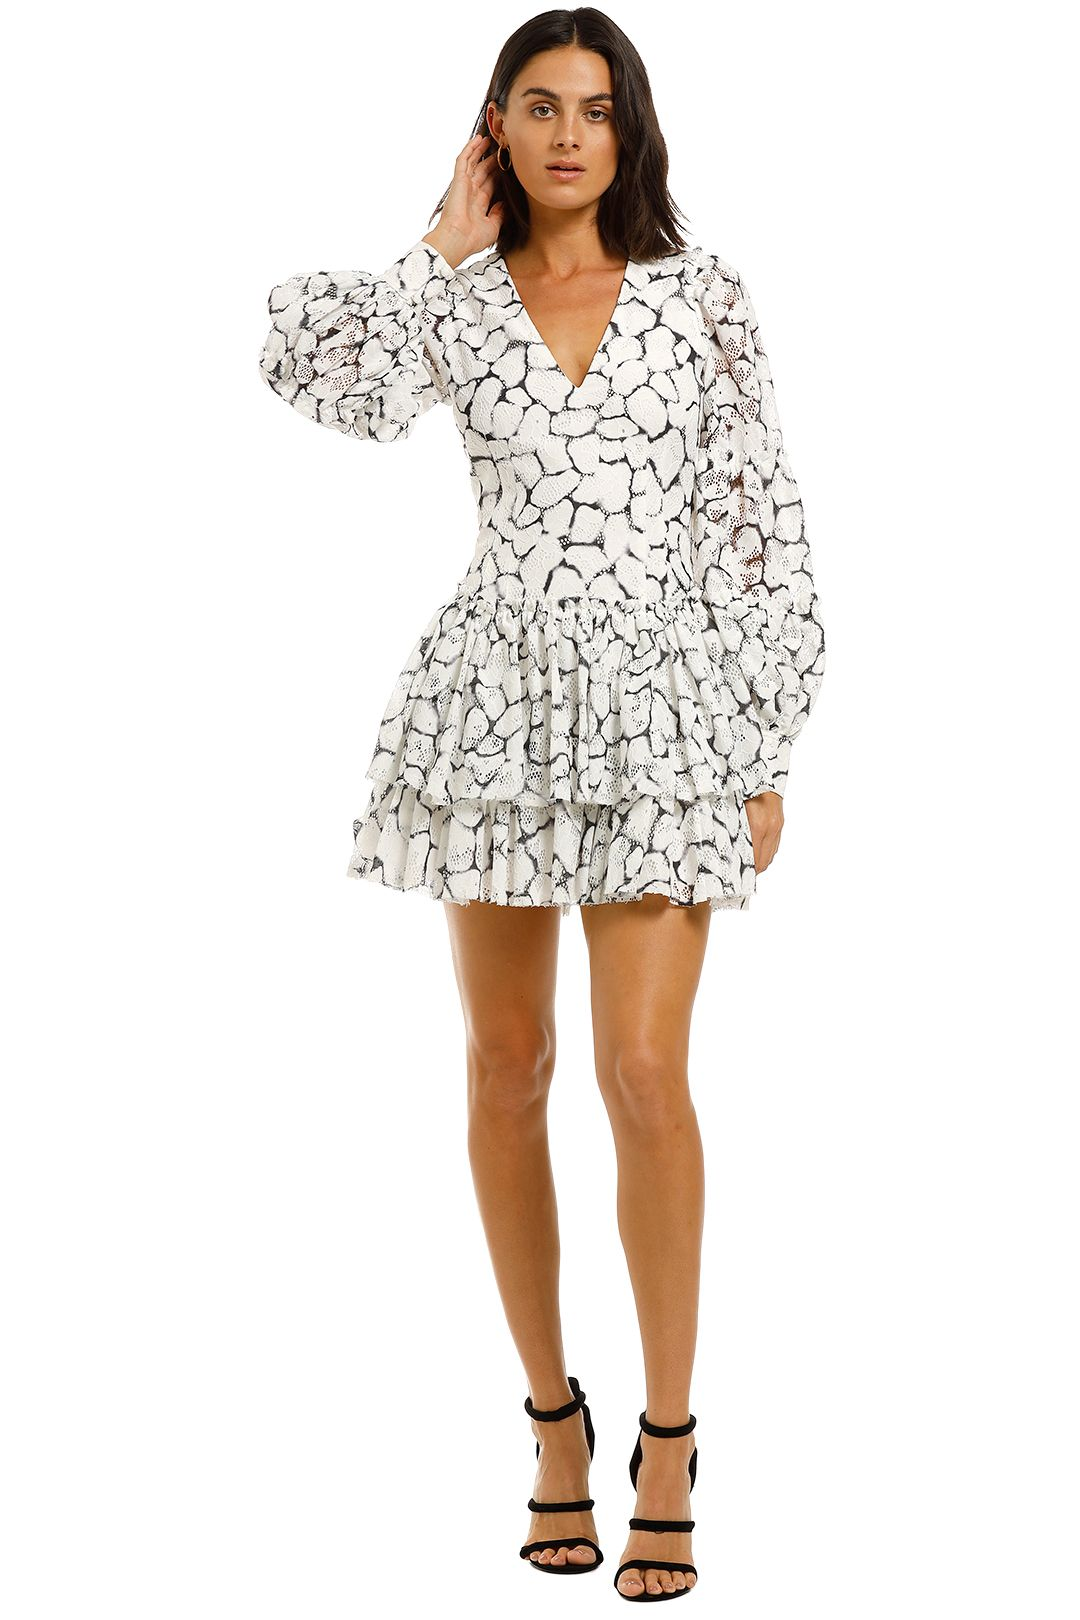 AJE-Rebellion-Lace-Mini-Dress-Front